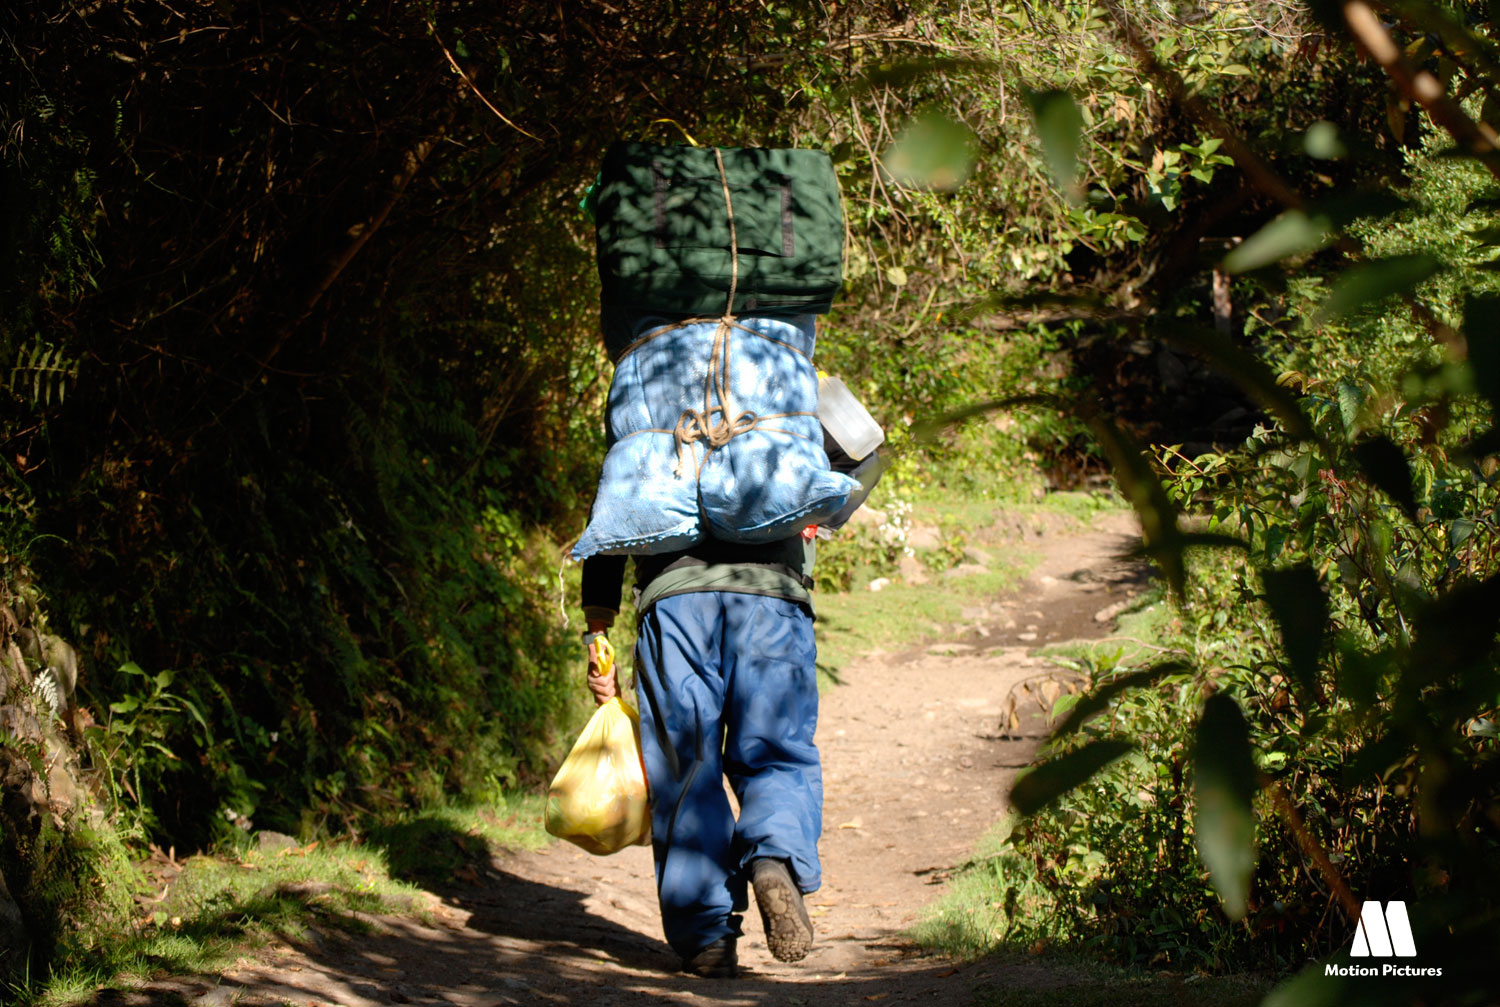 man walking back documentary porters of the inca trail, documental porteadores del camino inca